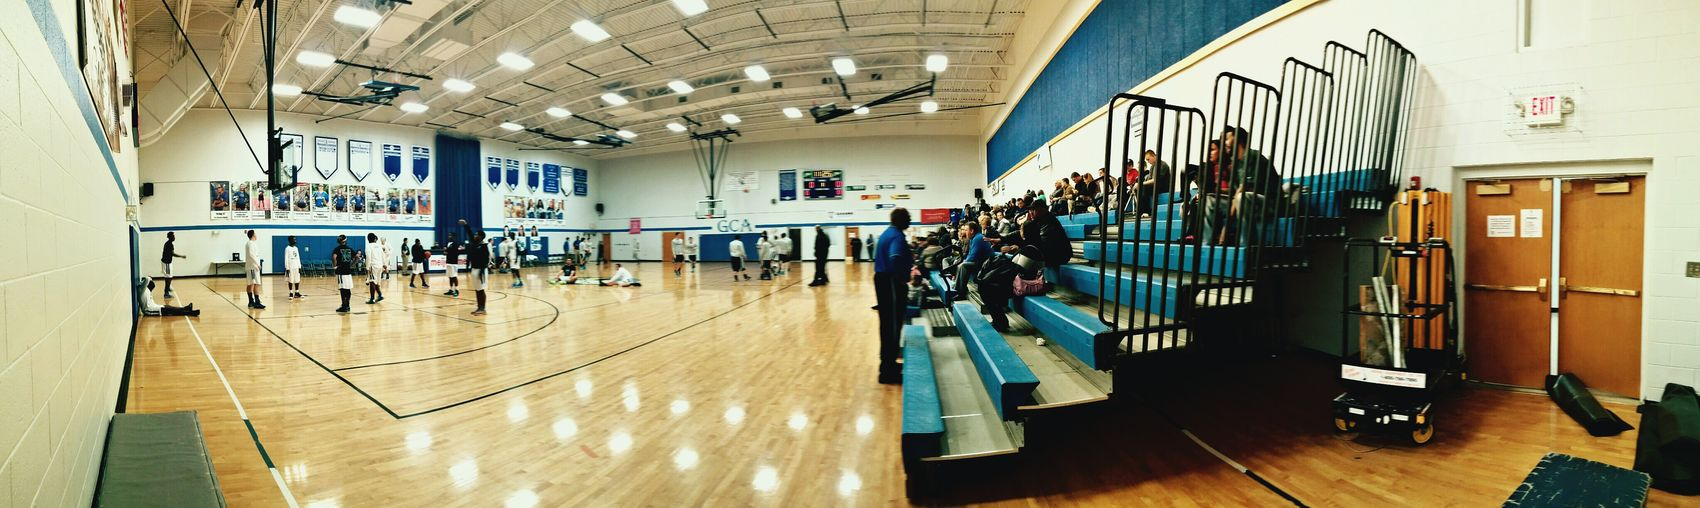 Basketball Basketball Game The Places I've Been Today Panorama Panoramic Photography Panoramic Everyday Lives Playing Basketball Sports Photography People